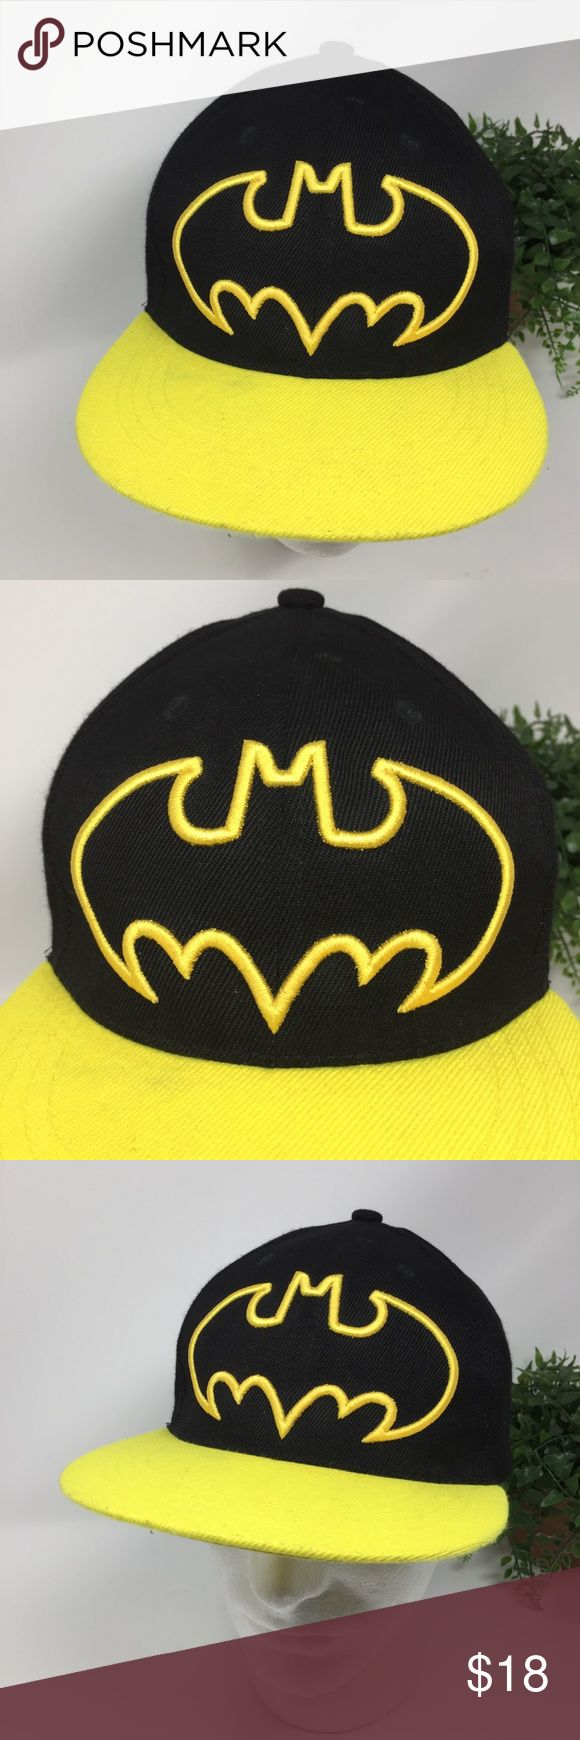 Six Flags Grand Prairie TX Batman Flat Bill Hat This listing is for a Six Flags Over Grand Prairie TX Batman Black Yellow Flat Bill Hat OS  EUC. Hat does not say LA Dodgers. I think it's an LA souvenir hat.  We LOVE finding unique and special hats ... of all kinds. Some are new and some have been pre-owned.   We sell NFL, NBA, NHL, and MLB hats. NCAA hats and NASCAR hats. And, we find other great hats like this one ...  Comes from a smoke free and pet free environment. Hat will be shipped in…